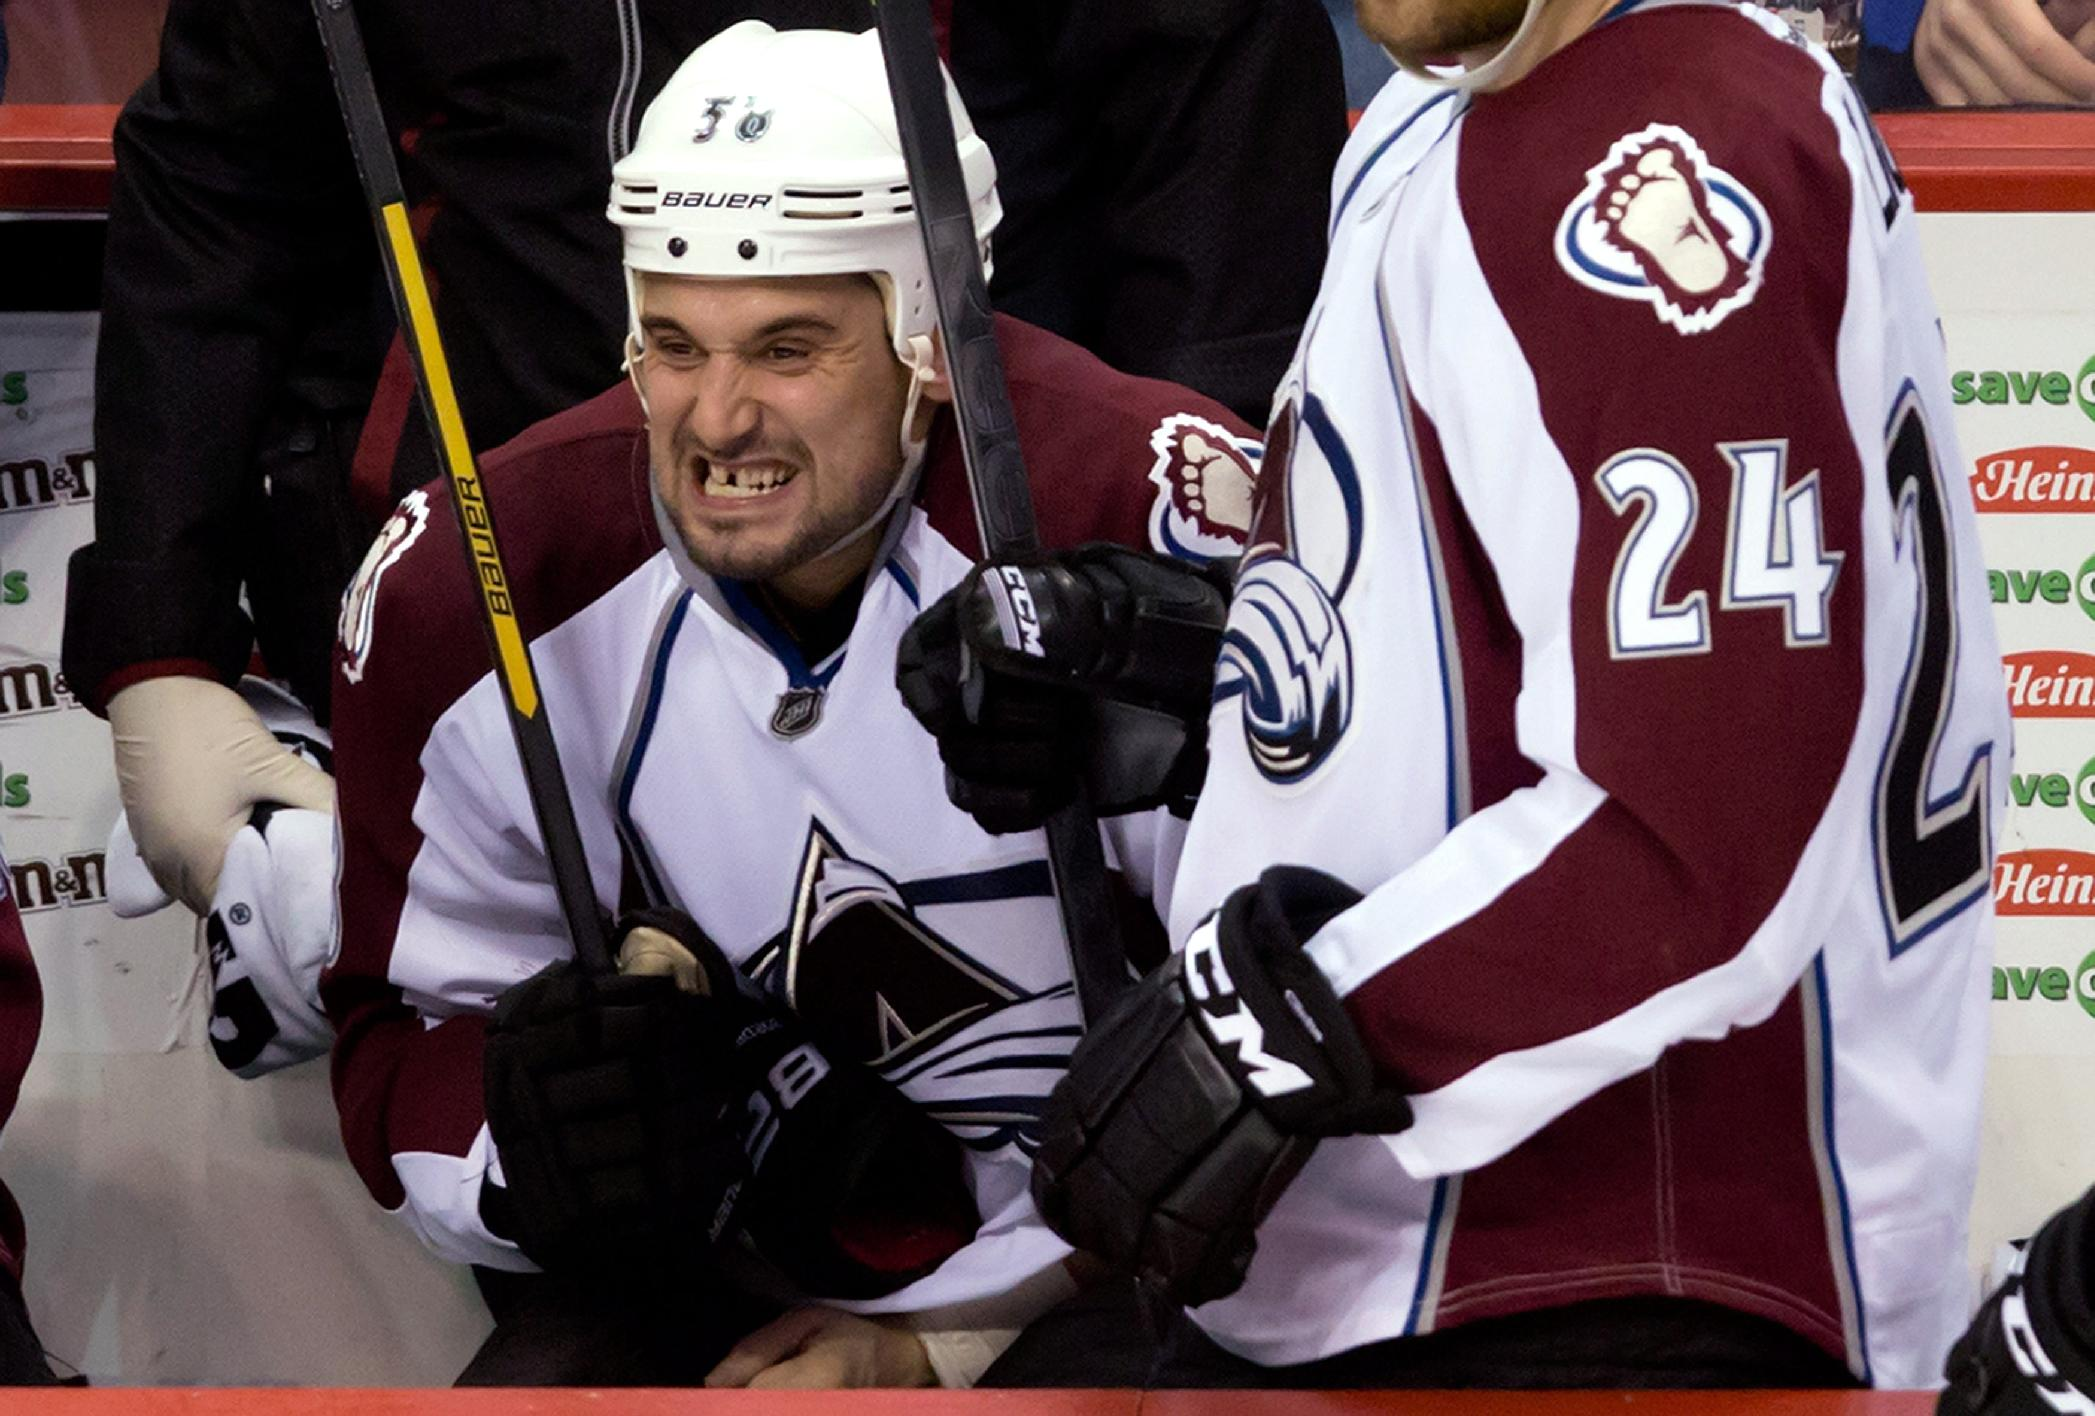 Colorado Avalanche's Patrick Bordeleau reacts on the bench after getting slashed during the third period of an NHL hockey game against the Vancouver Canucks on Thursday, April 10, 2014, in Vancouver, British Columbia